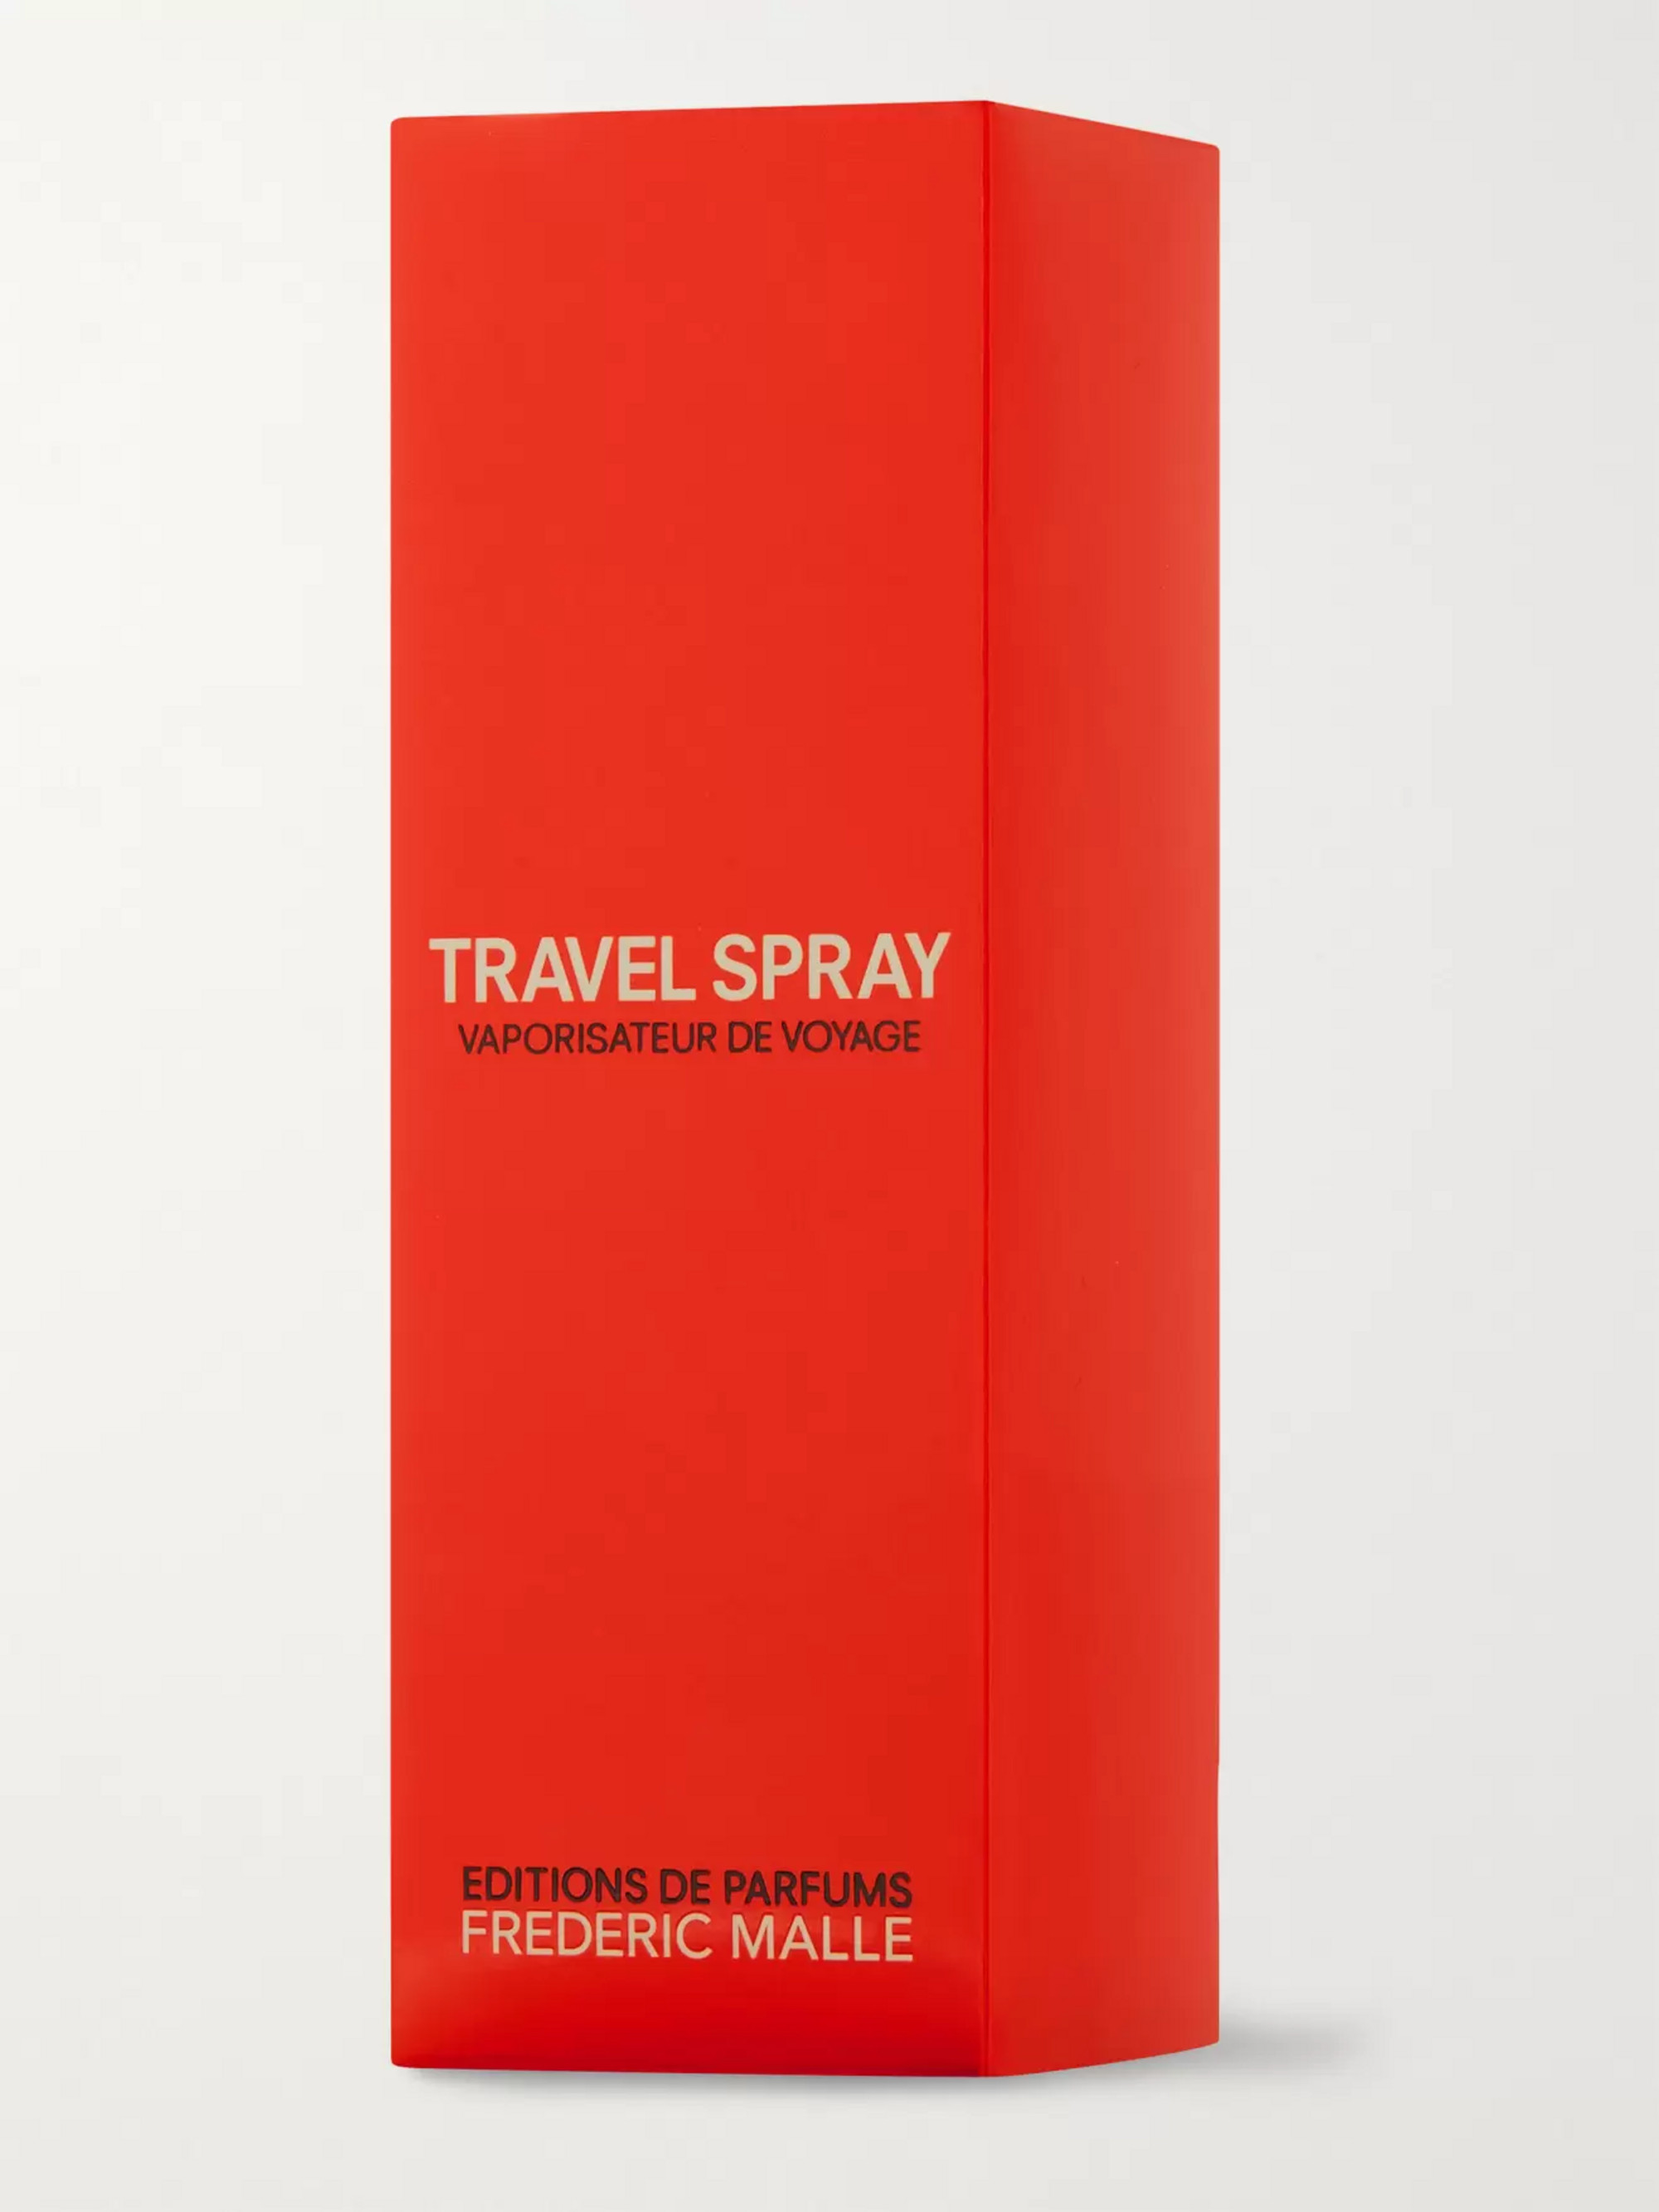 Frederic Malle Travel Spray Case